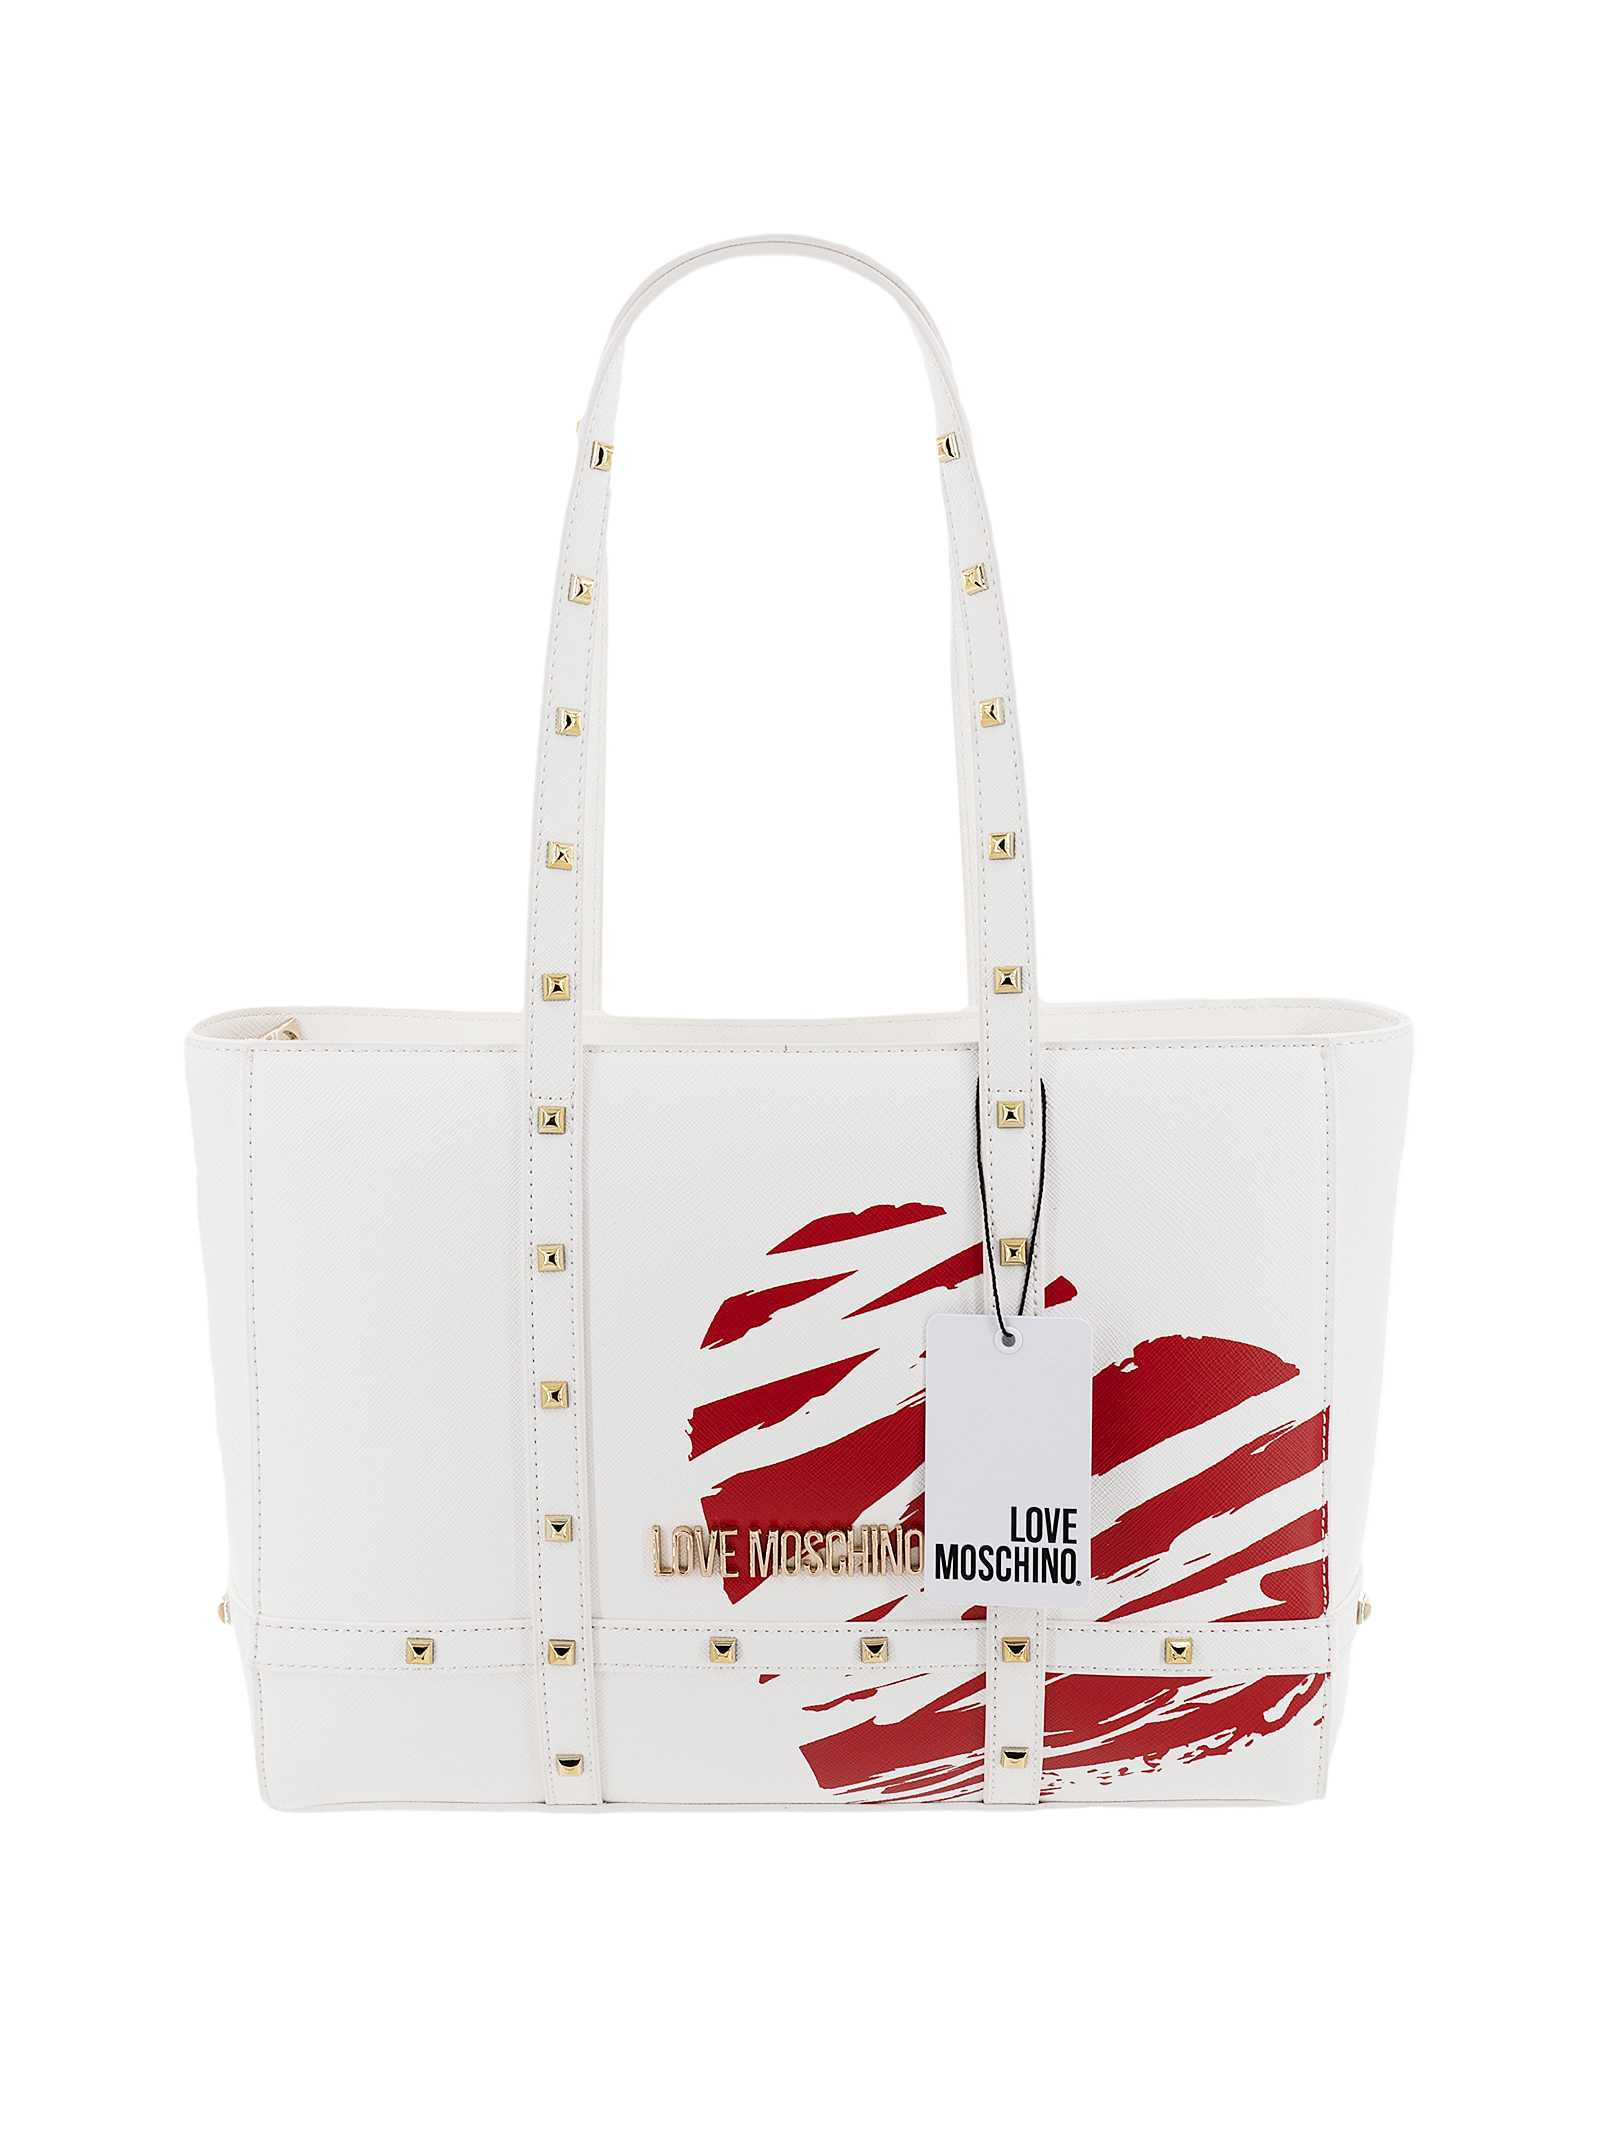 Love Moschino Borsa Shopping Donna Bianca